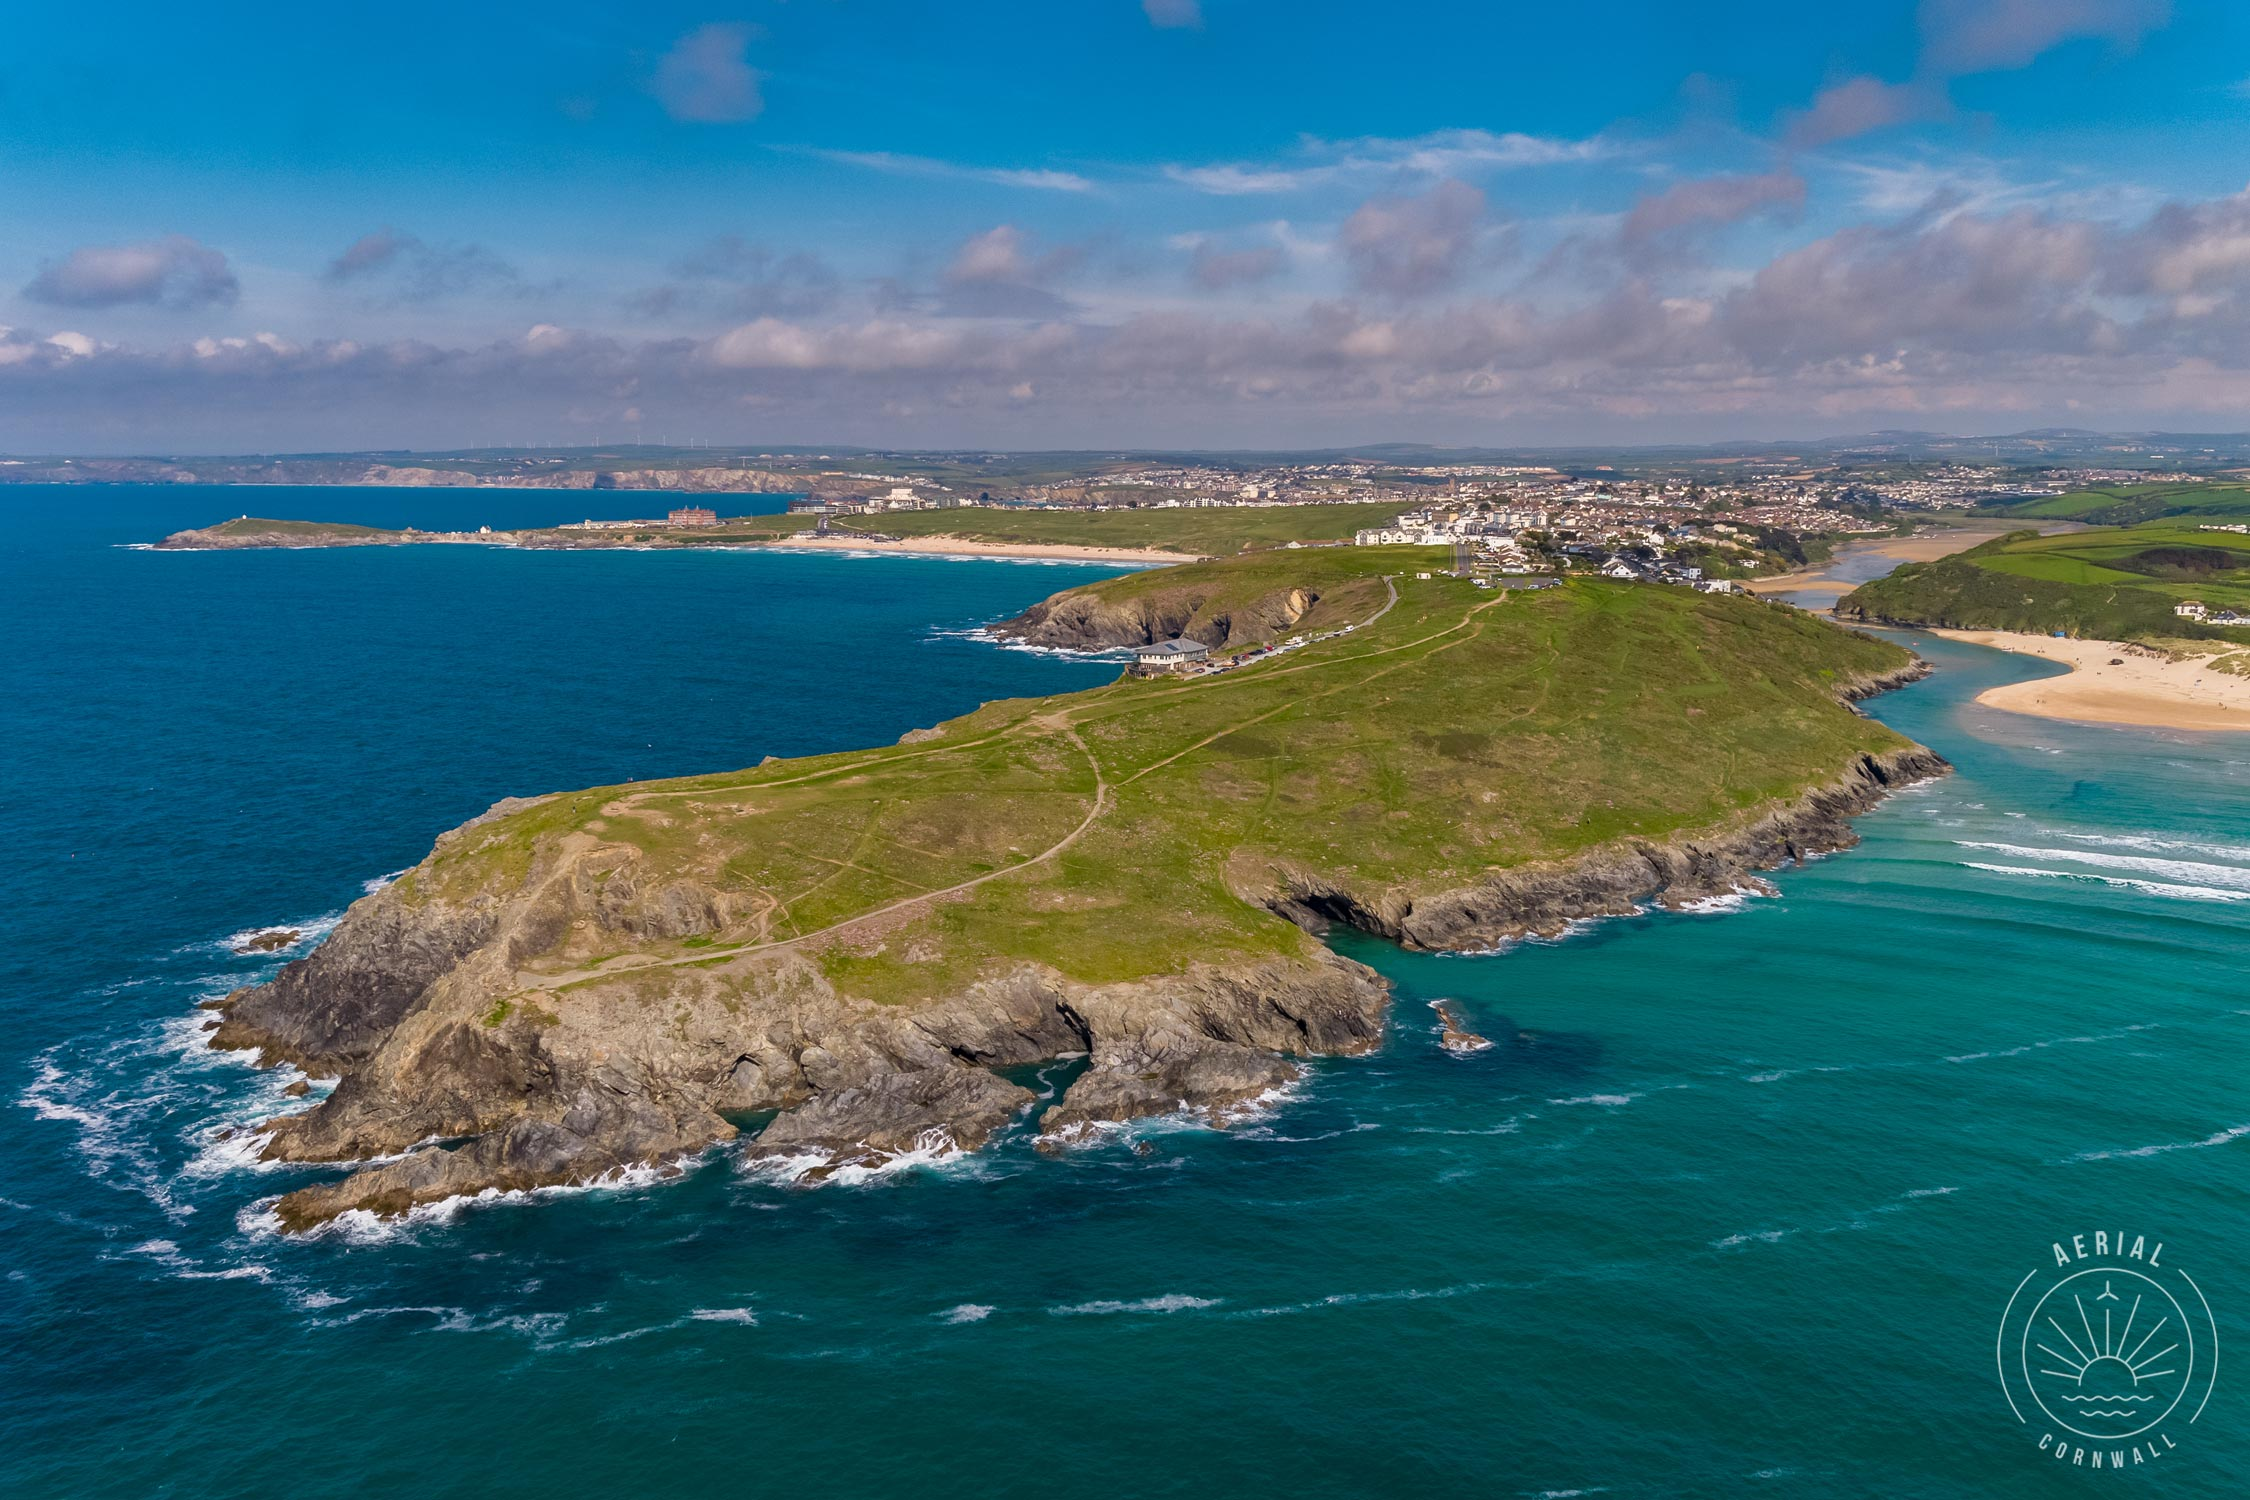 Location: Pentire Headland